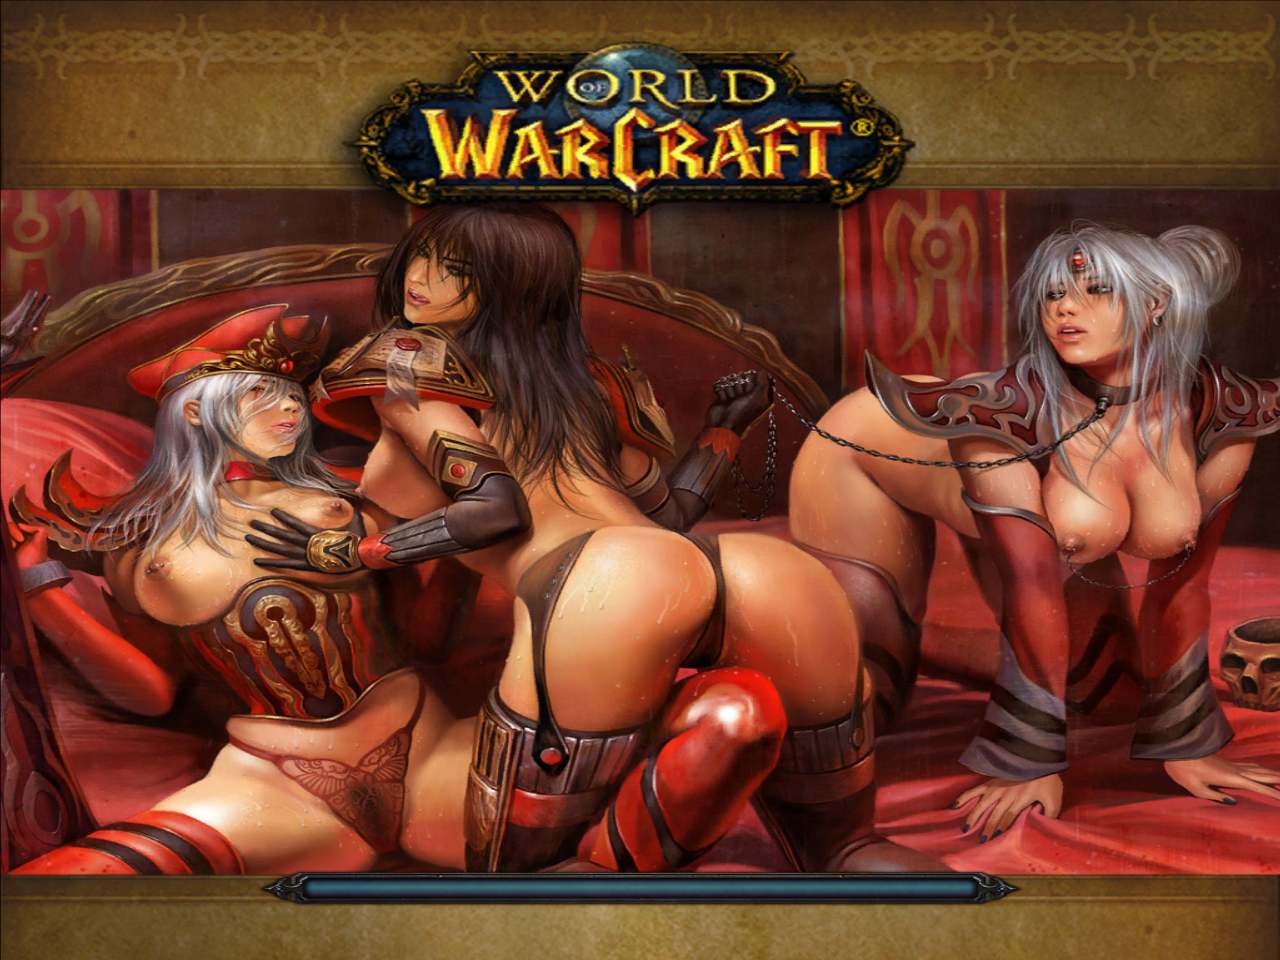 World of warcraft nude patch 1 2 nudes photo